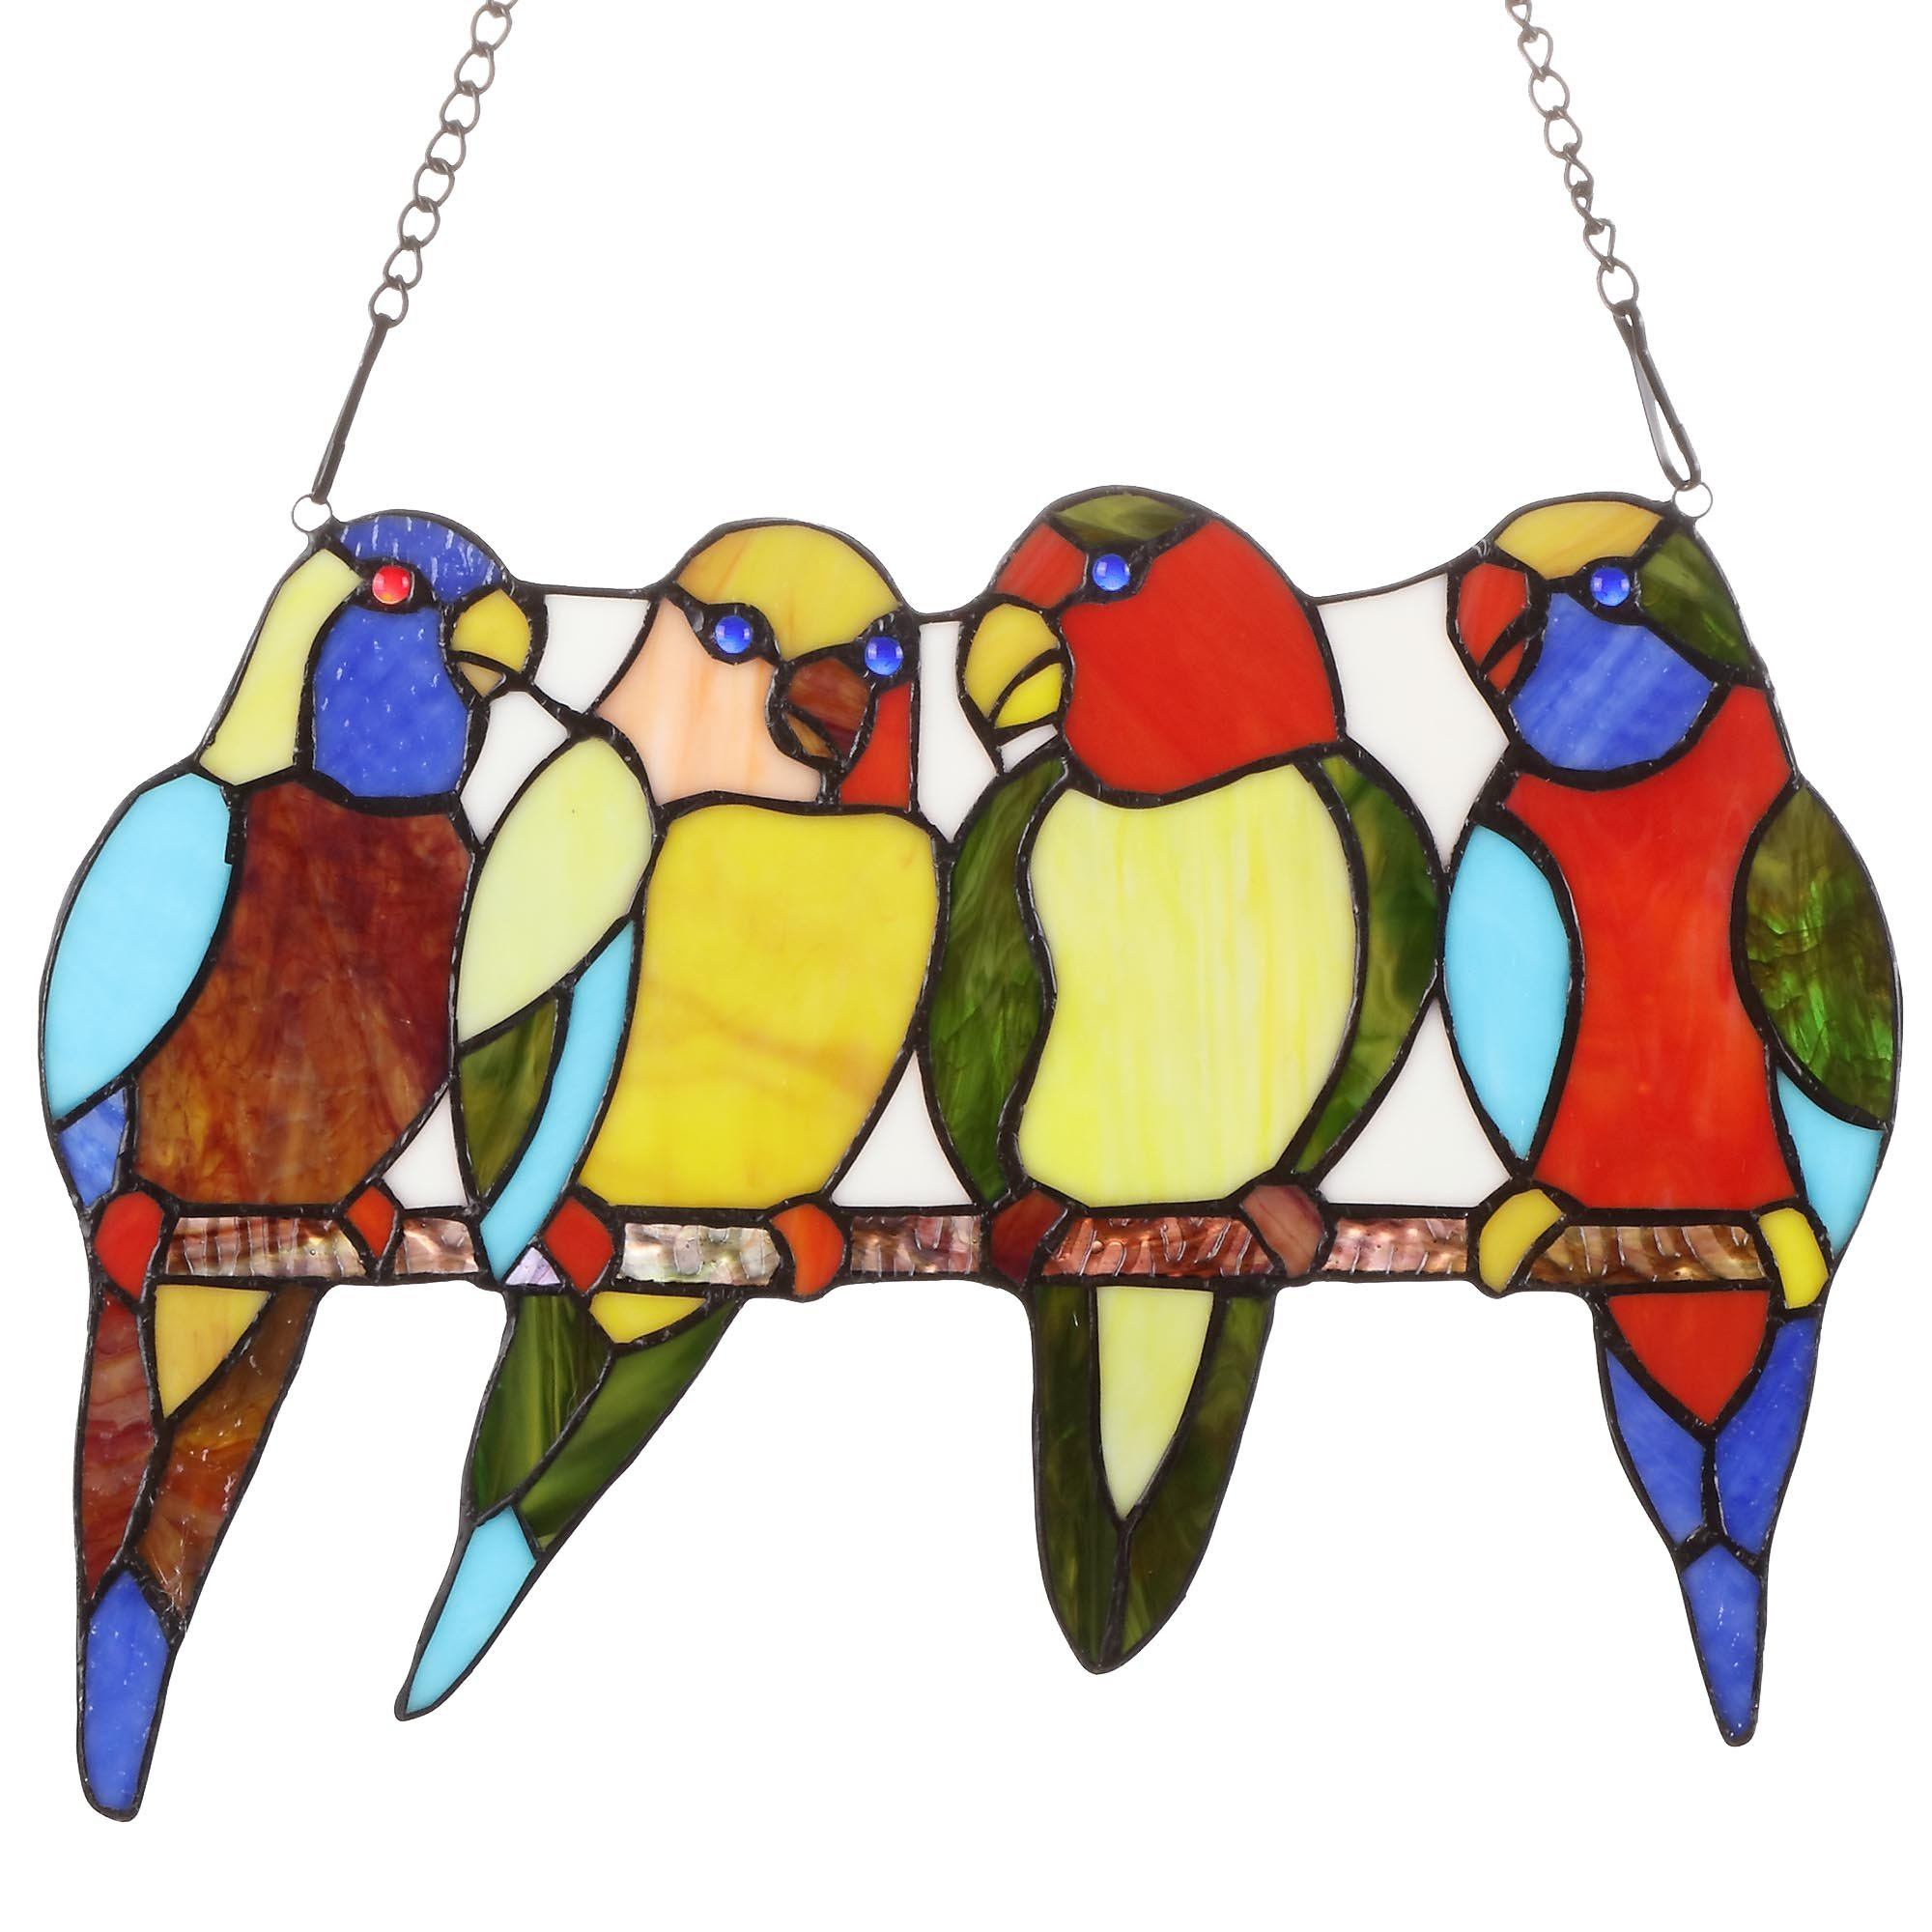 Bieye W10001 Tropical Birds Tiffany Style Stained Glass Window Panel with Chain, 14.5-inch Wide (4 Parrots) by Bieye